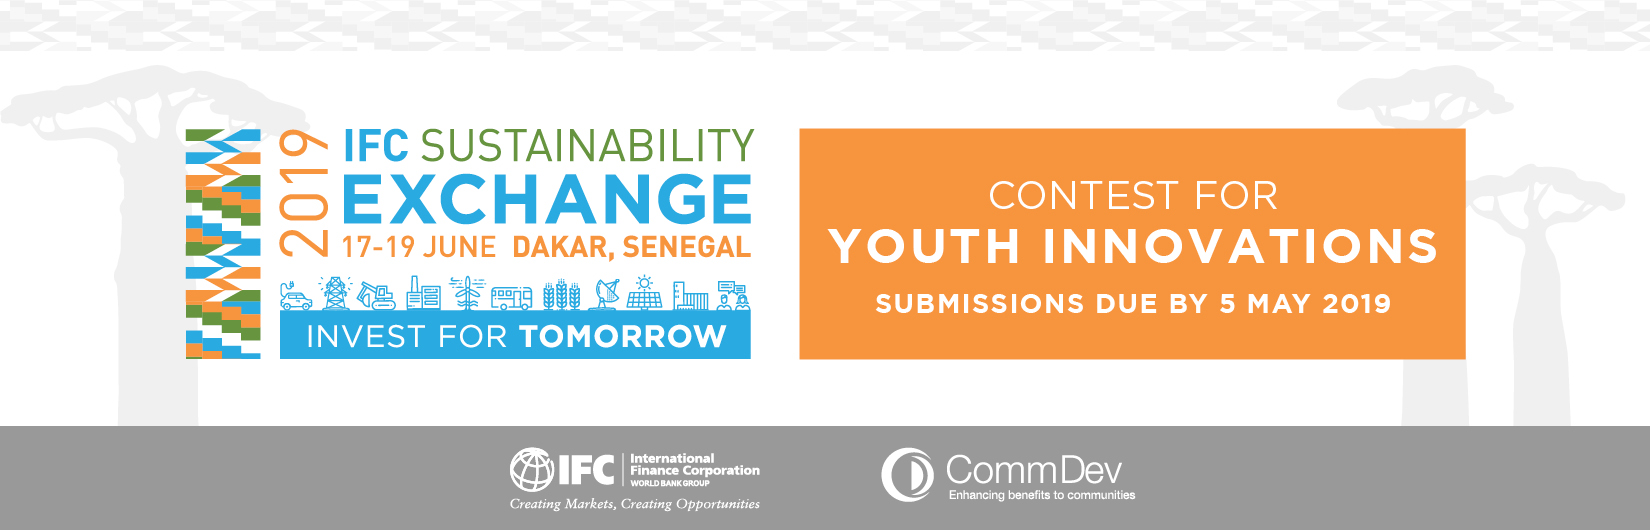 IFC Sustainability Exchange Contest for Youth Innovations